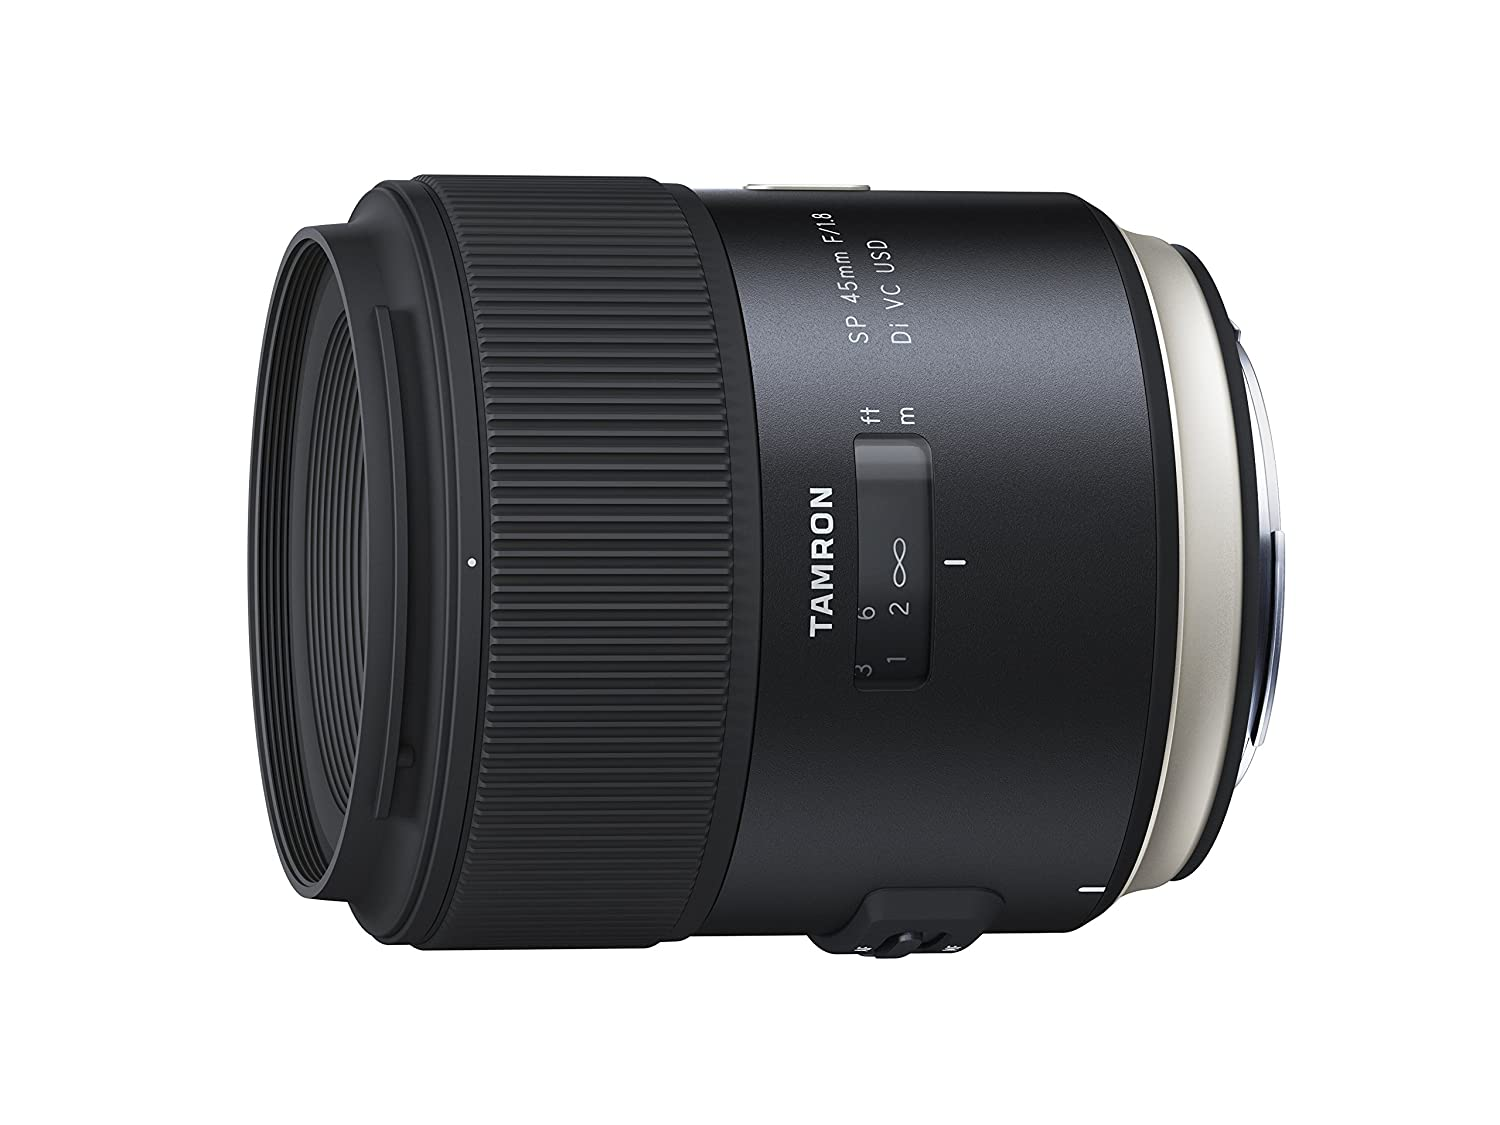 Tamron AFF013N-700 SP 45mm F/1.8 Black Friday Deals 2019